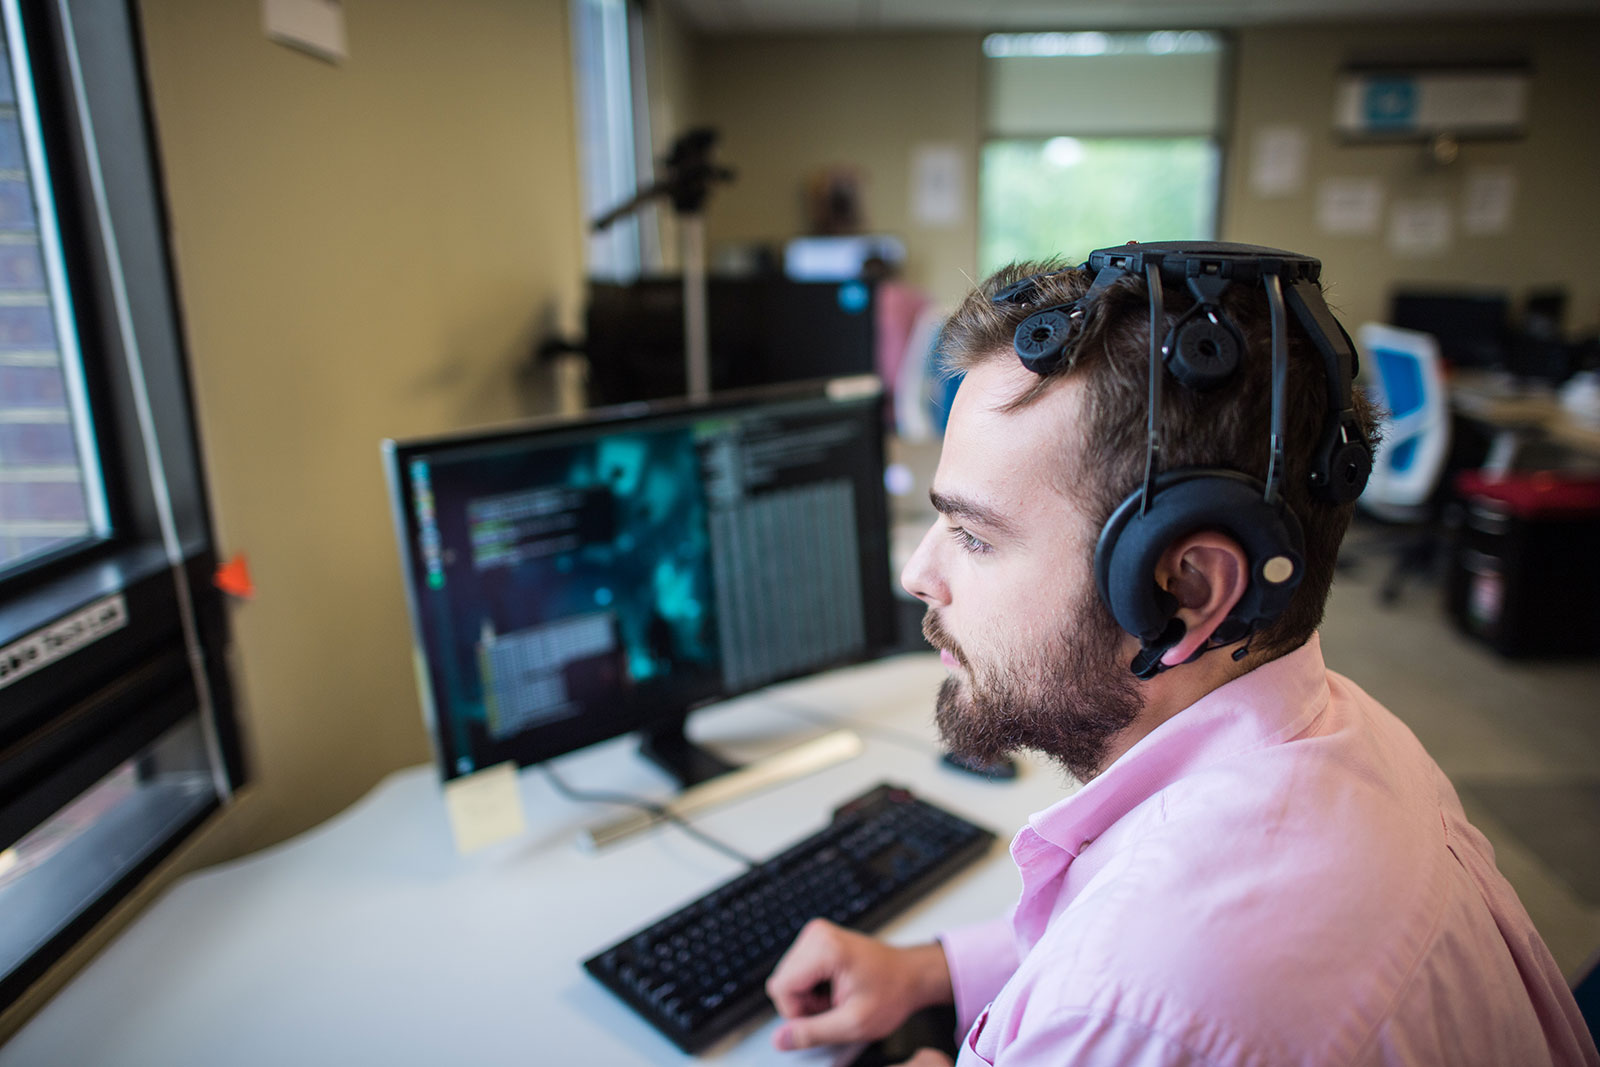 Lead engineer James Hamet develops software for a dry version of the sensor cap that communicates brain activity. Photo by Austin Thomason, Michigan Photography.